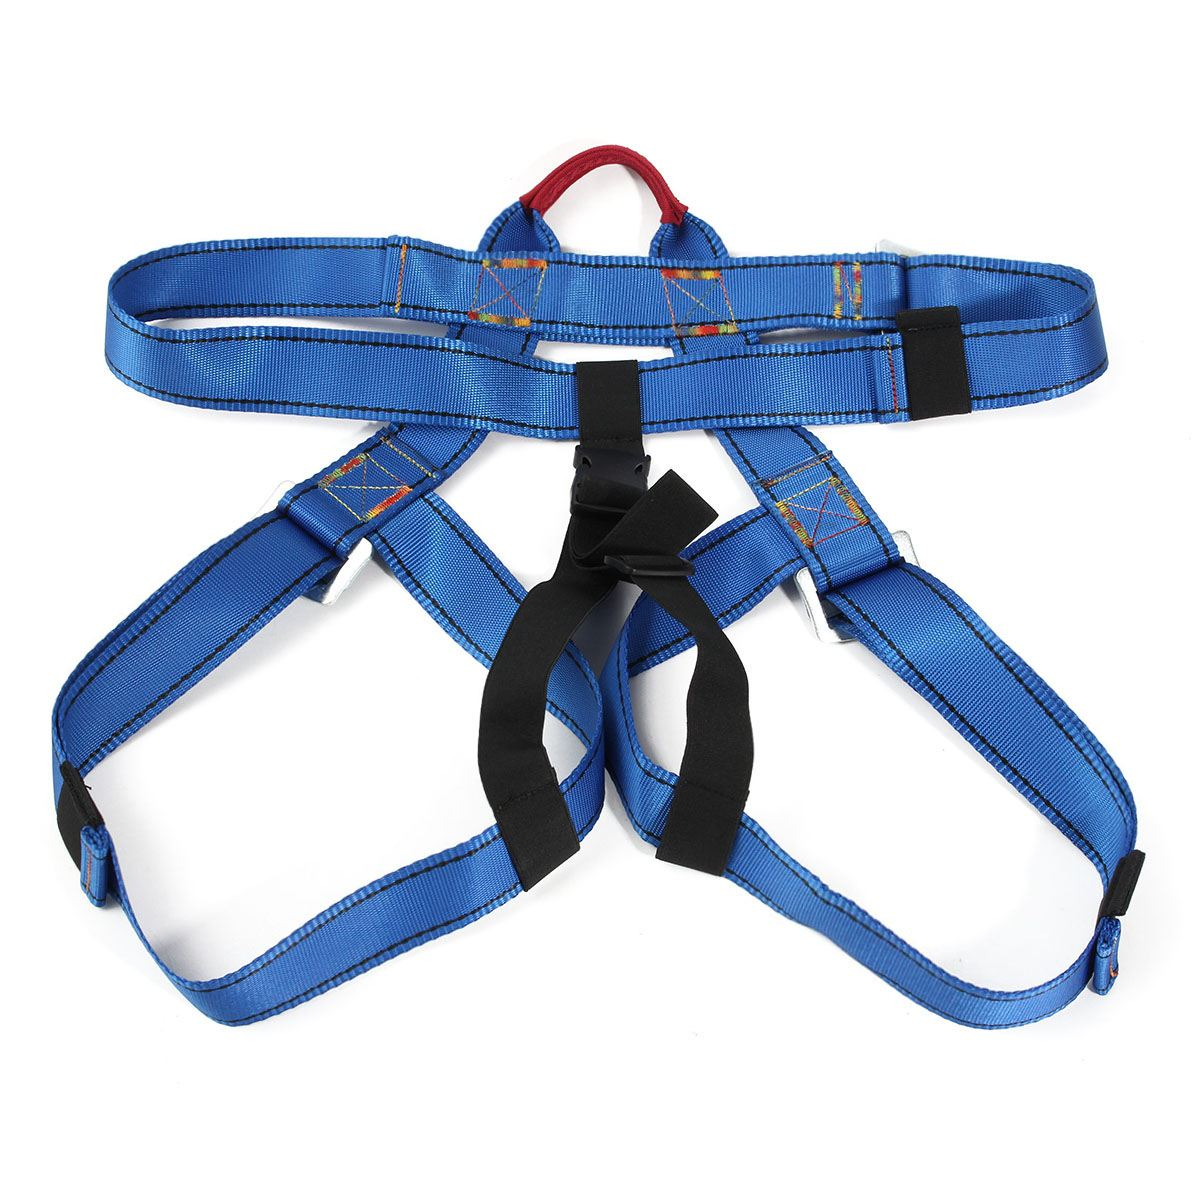 Safurance Outdoor Climbing Rappelling Climbing Harness Seat Safety Sitting Bust Belt Safety belt  Workplace Safety Harness outdoor climbing safety harness climbing rappelling belt bust safety belt waist use safety belts orange gm1412